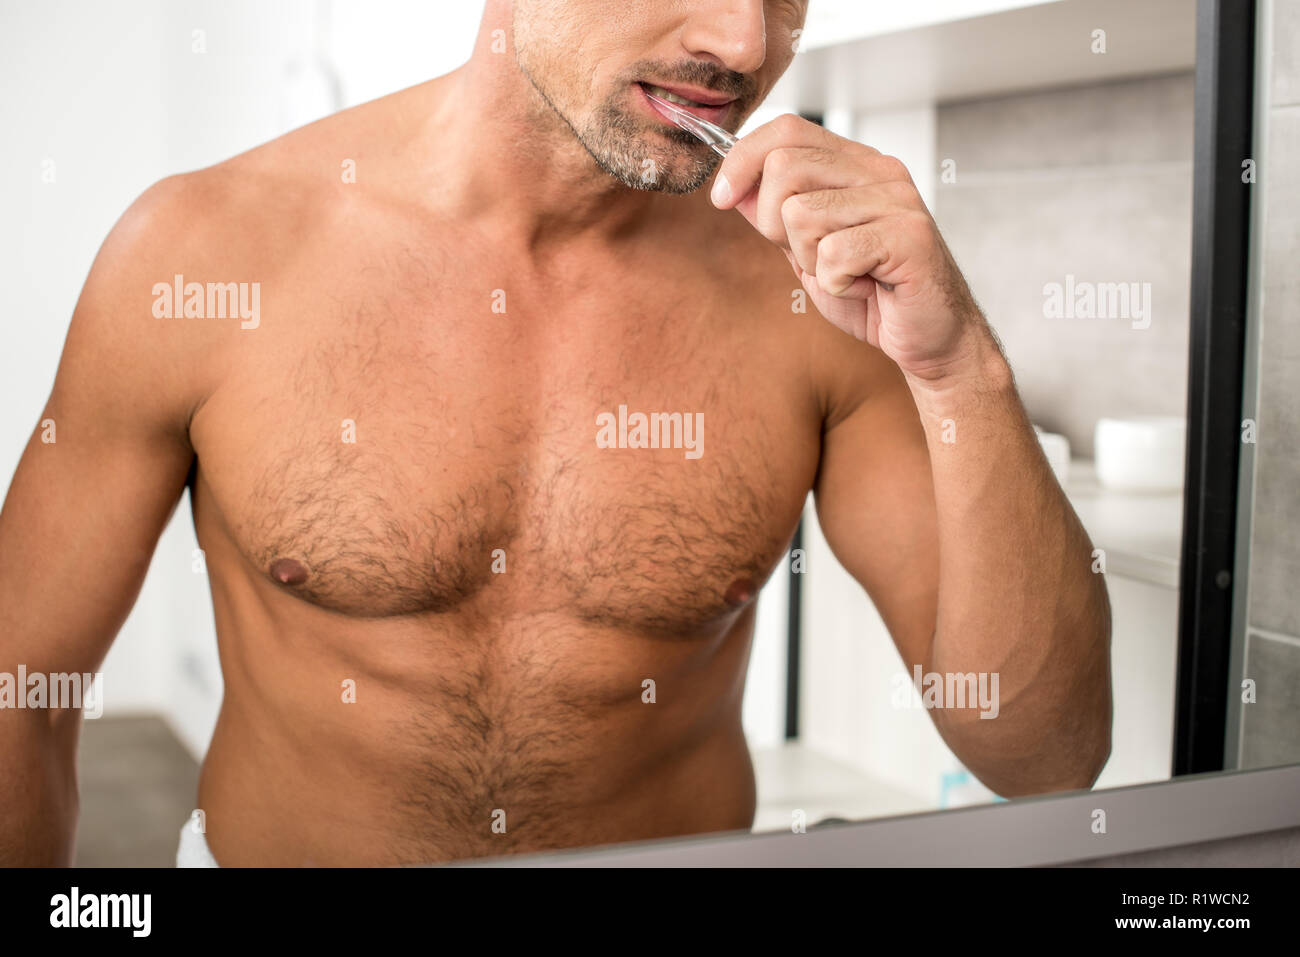 Cropped Image Of Adult Man With Muscular Torso Brushing Teeth And